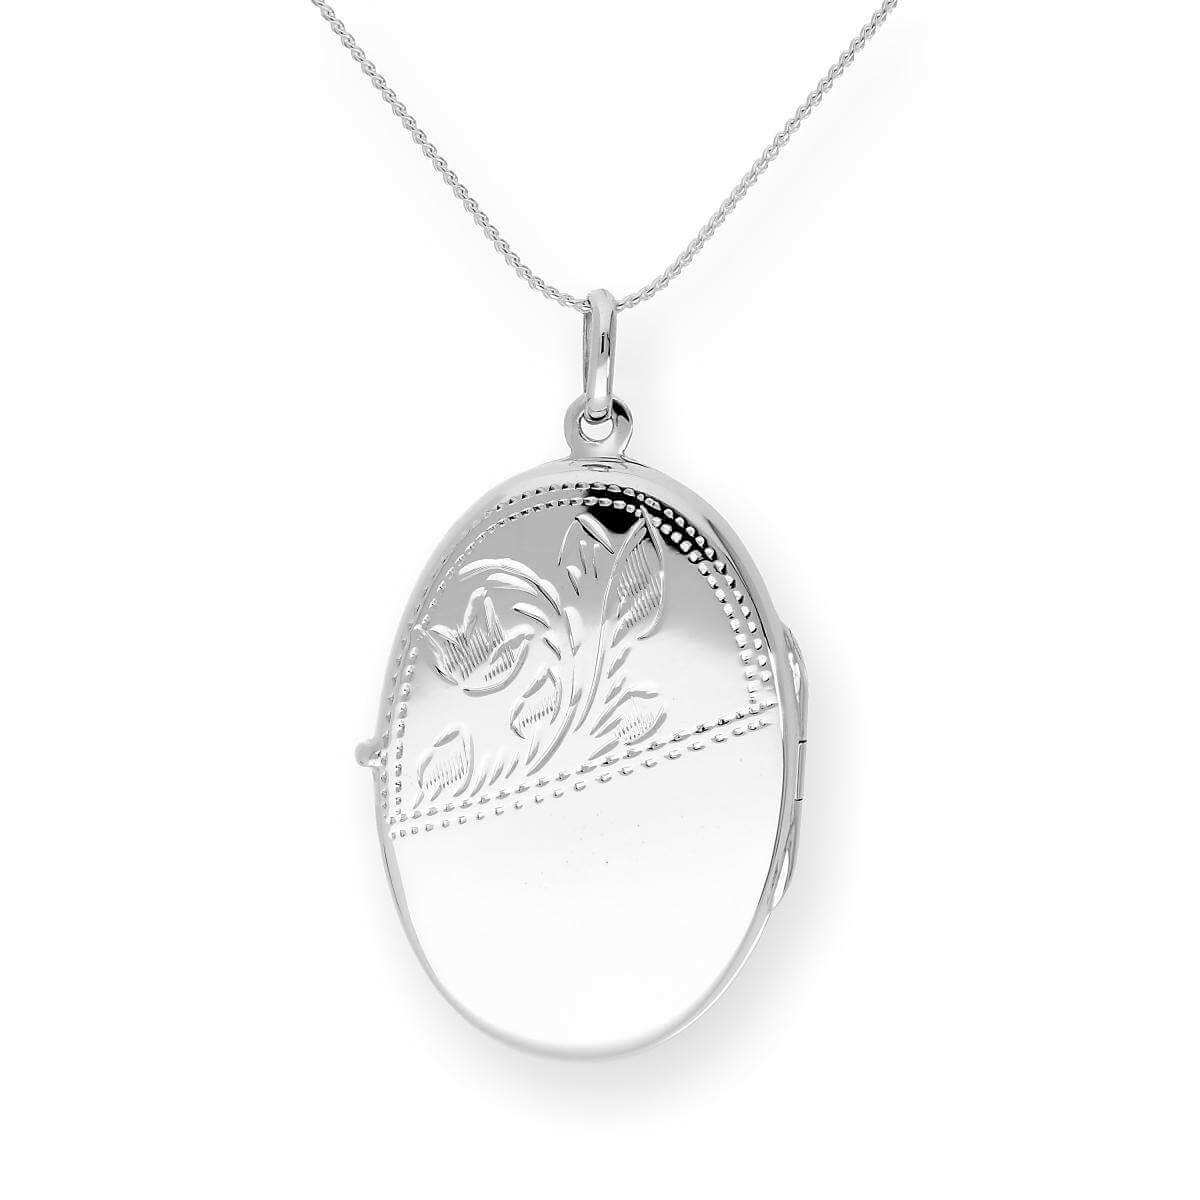 Large Sterling Silver Engravable Oval Locket on Chain 16 - 24 Inches